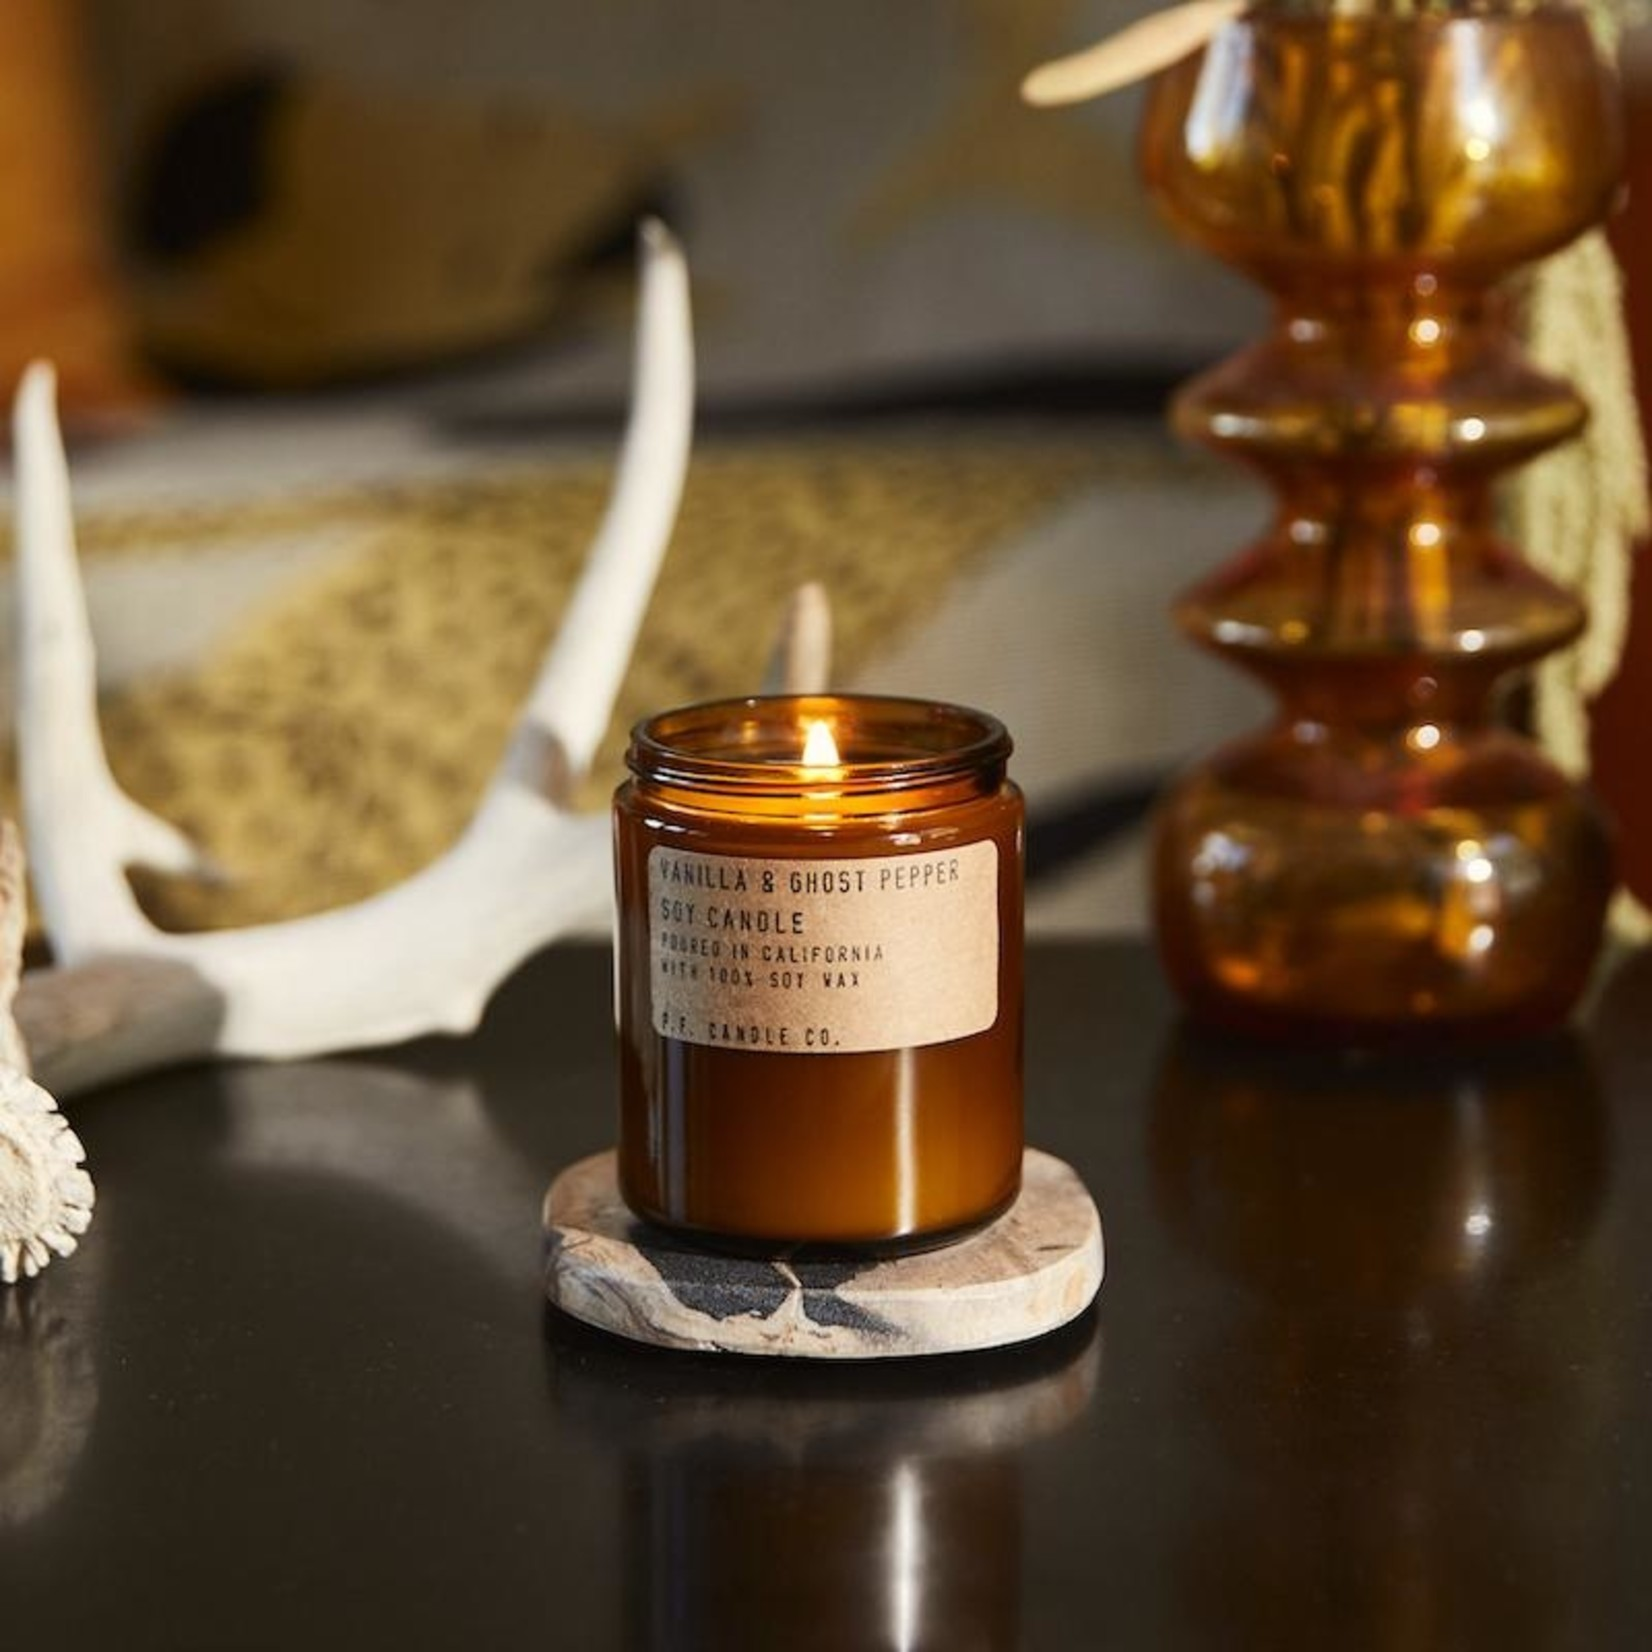 P.F. Candle Co. P.F. Soy Candle 7.2oz Vanilla & Ghost Pepper